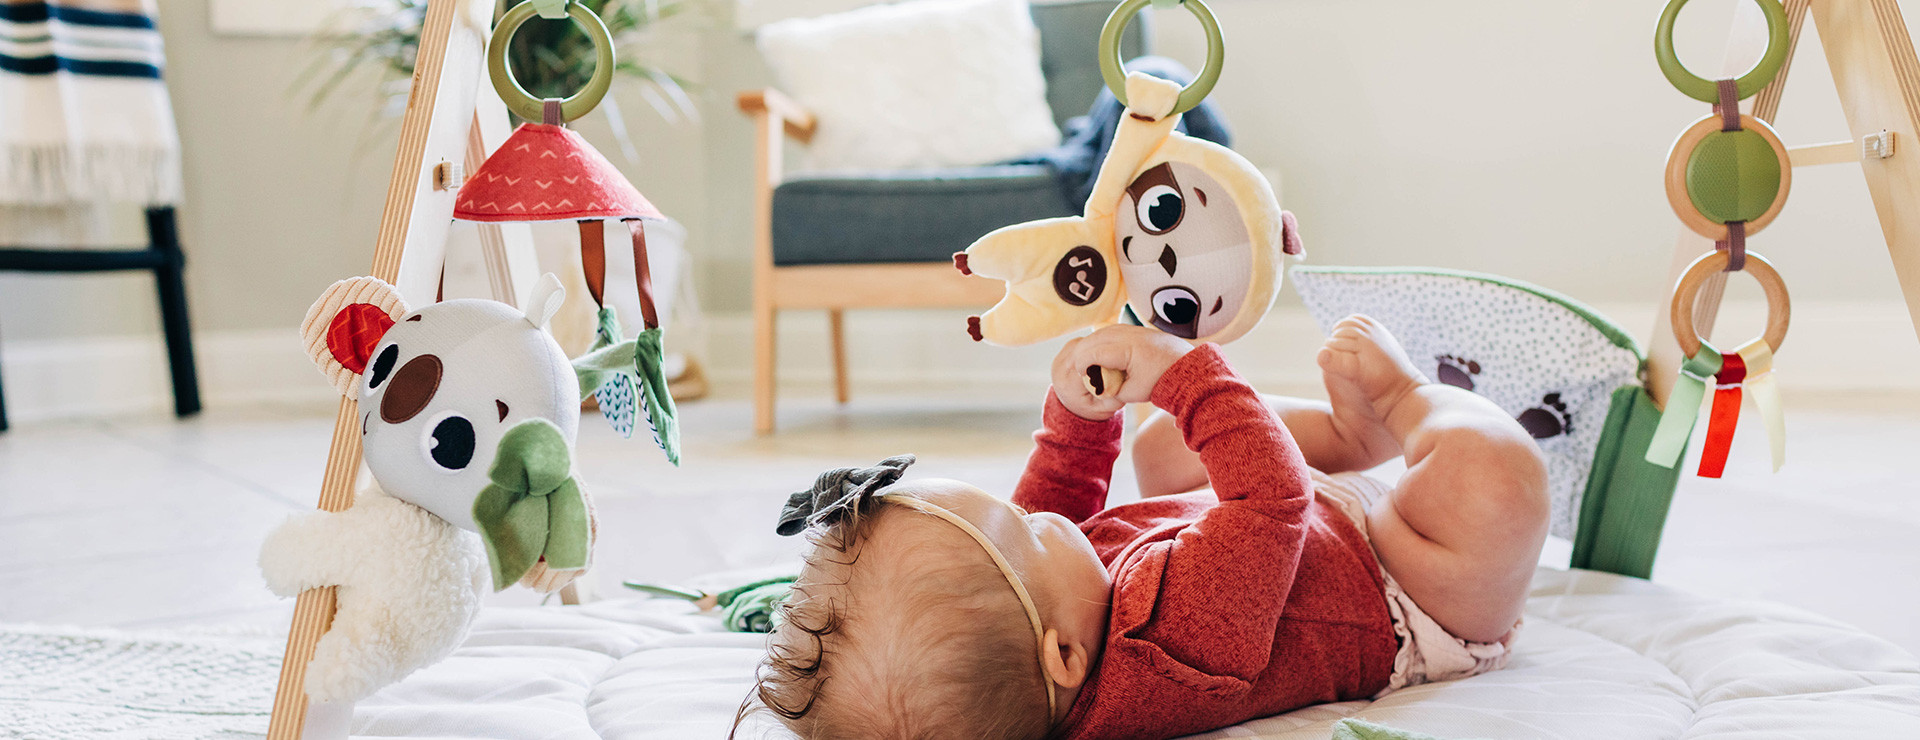 Baby-activated musical sloth supports cognitive development